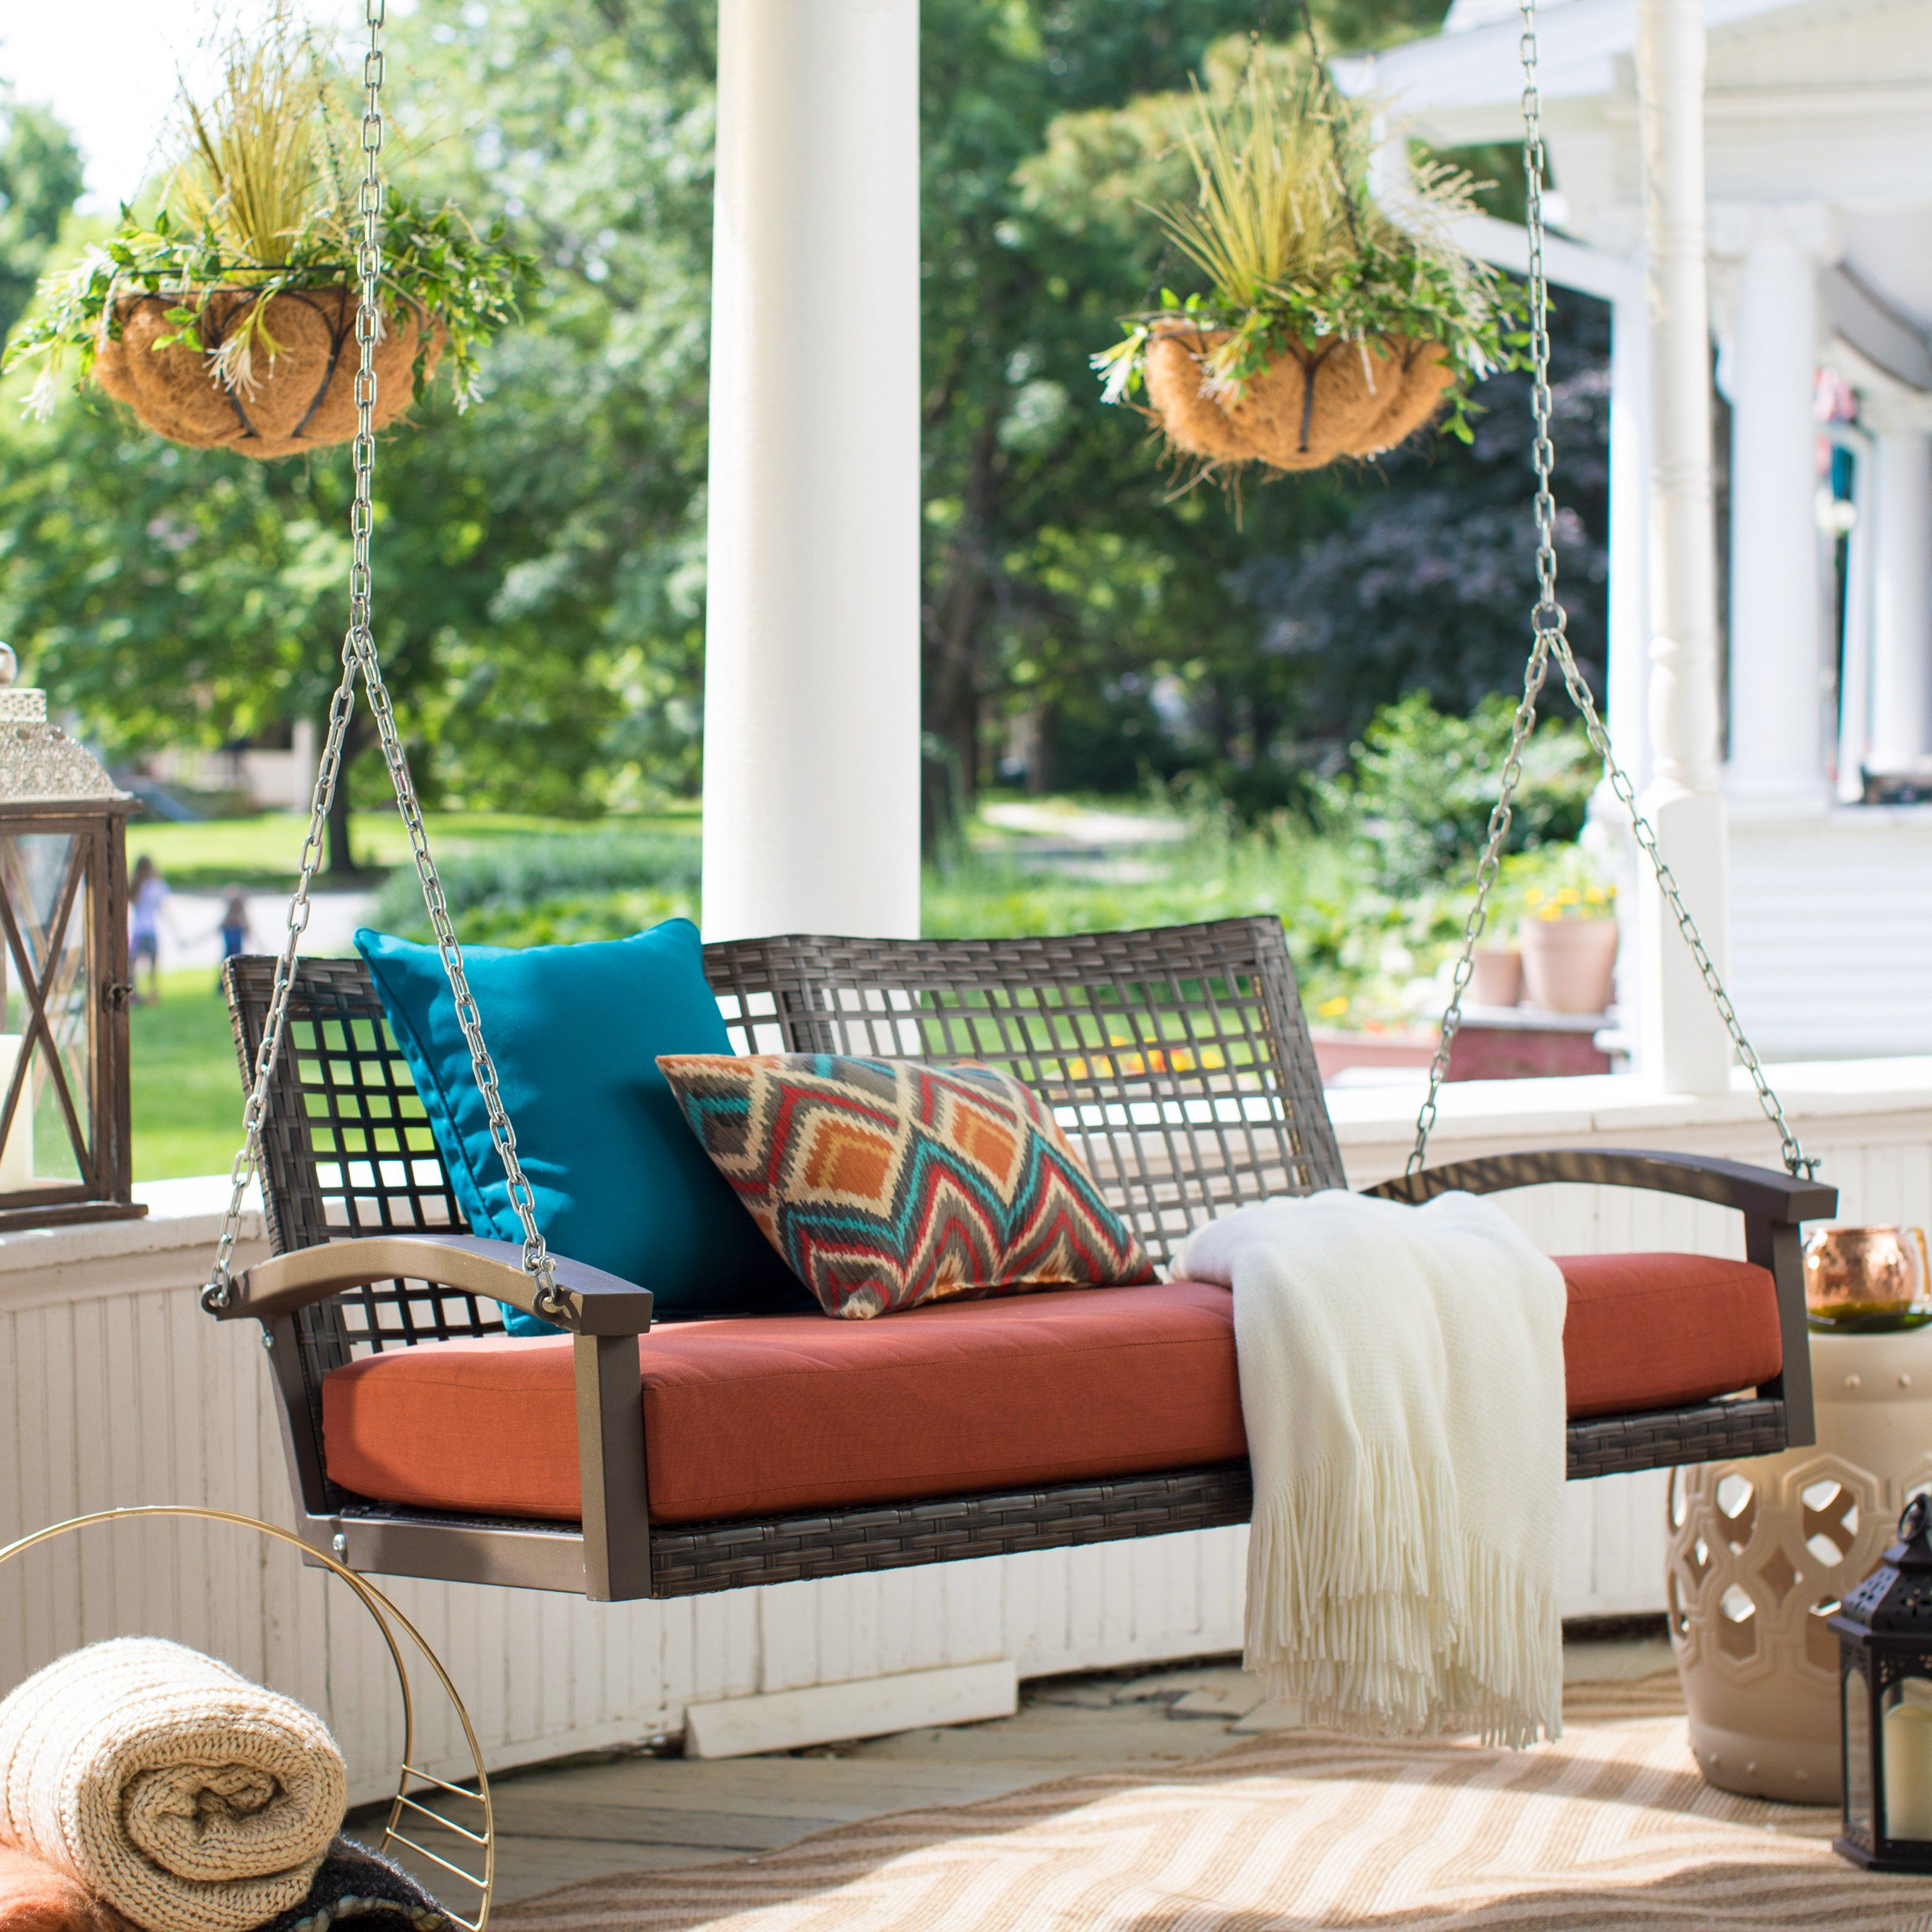 Belham living bigsby resin wicker porch swing with cushion from